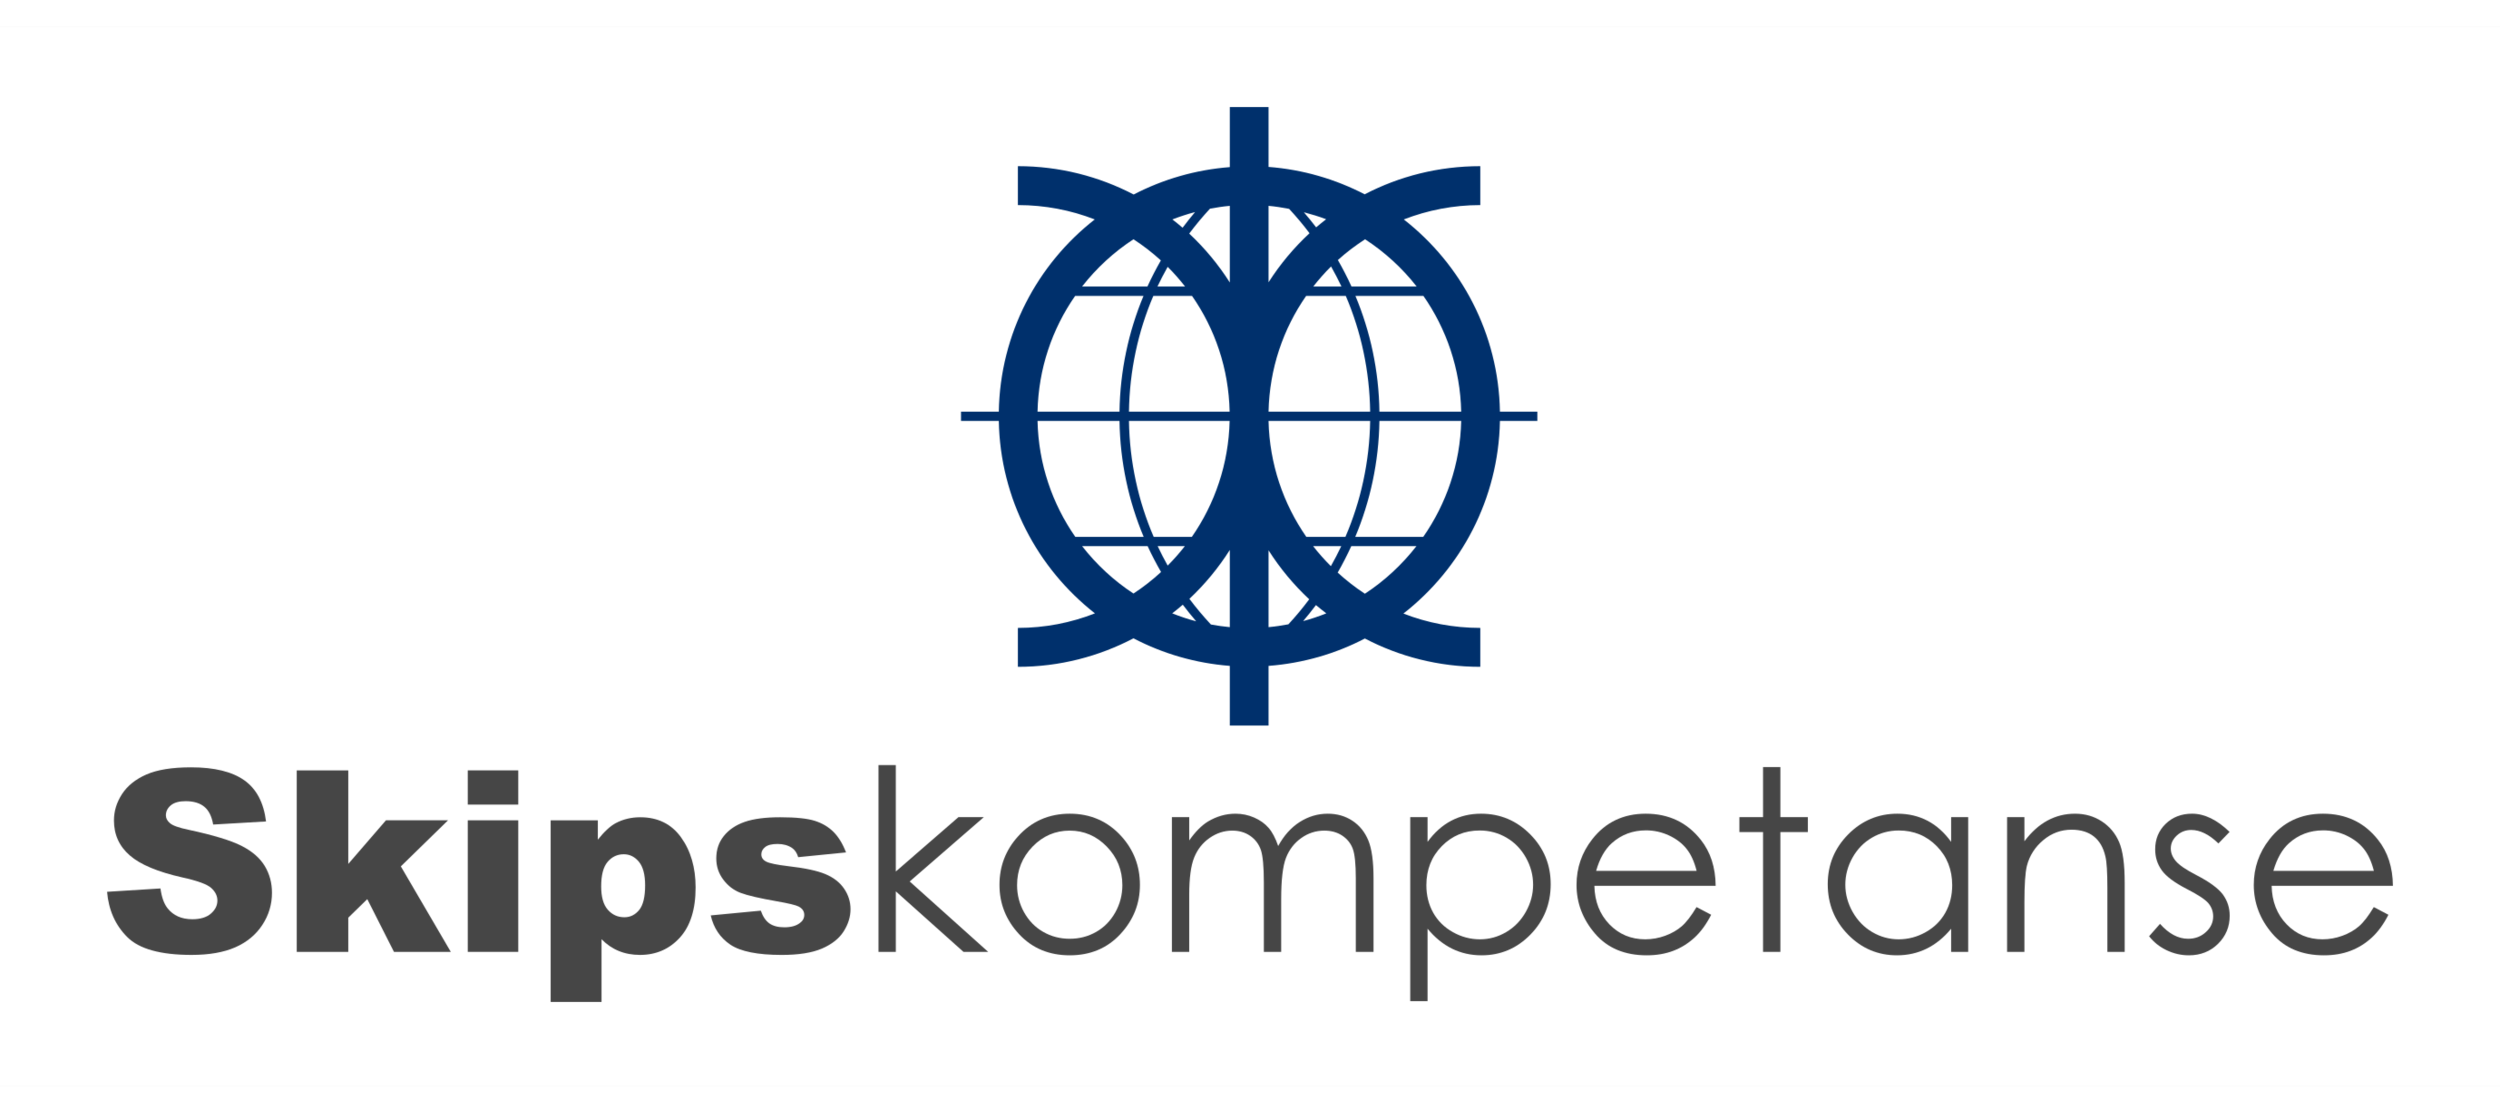 Skipskompetanse - An engineering company focused on ship design and development. Located in Måløy in Western Norway in an area with a long history in shipbuilding.Website